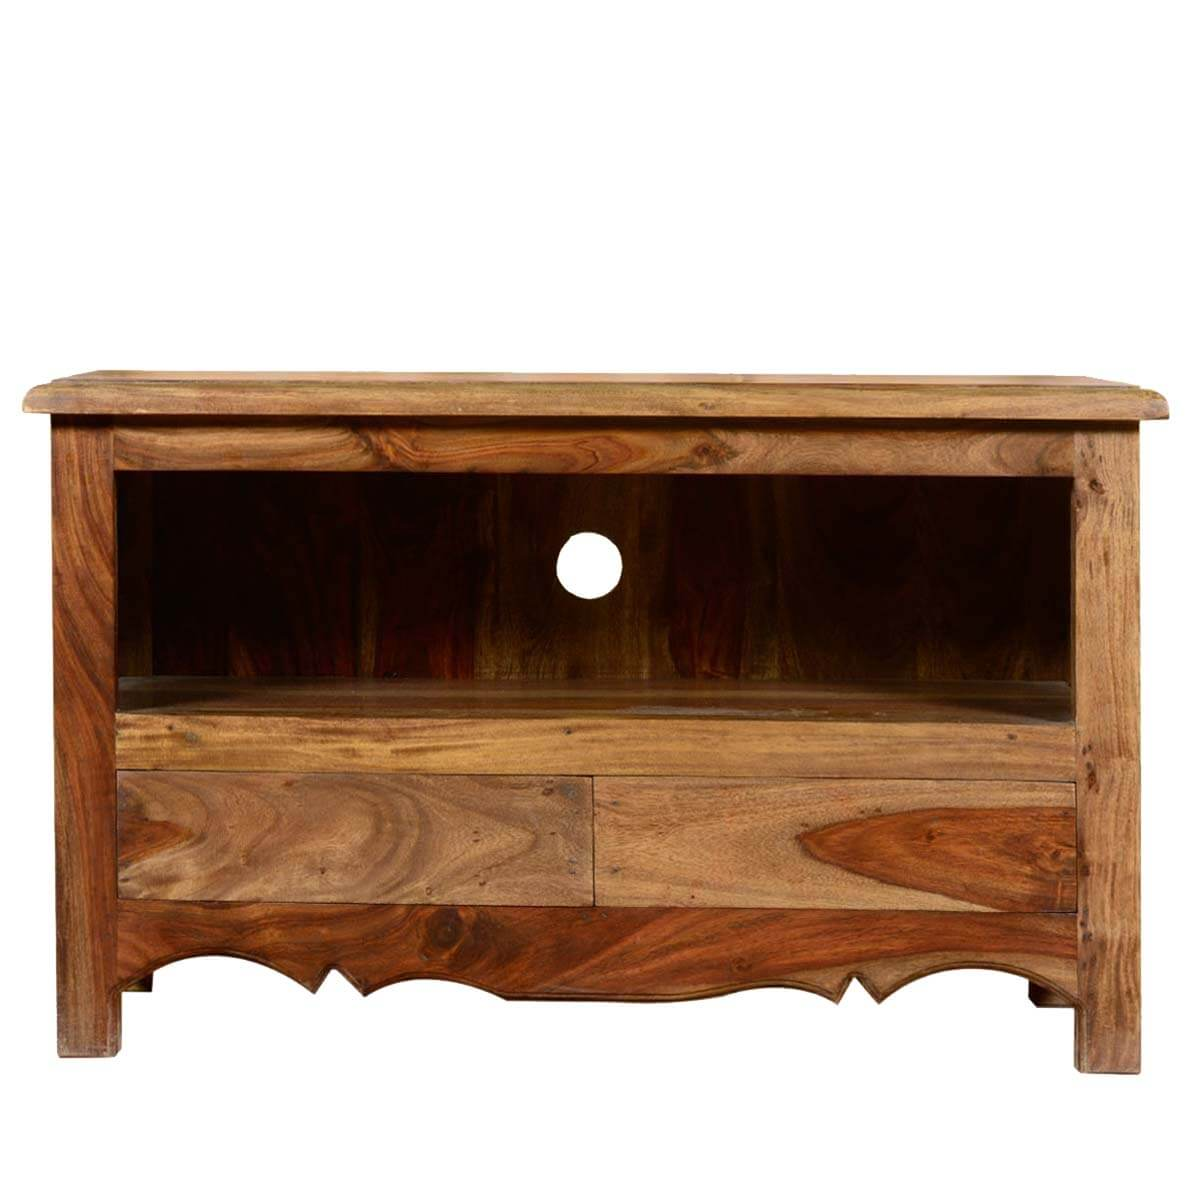 Colonial solid wood entertainment center 35 tv stand Wood entertainment center